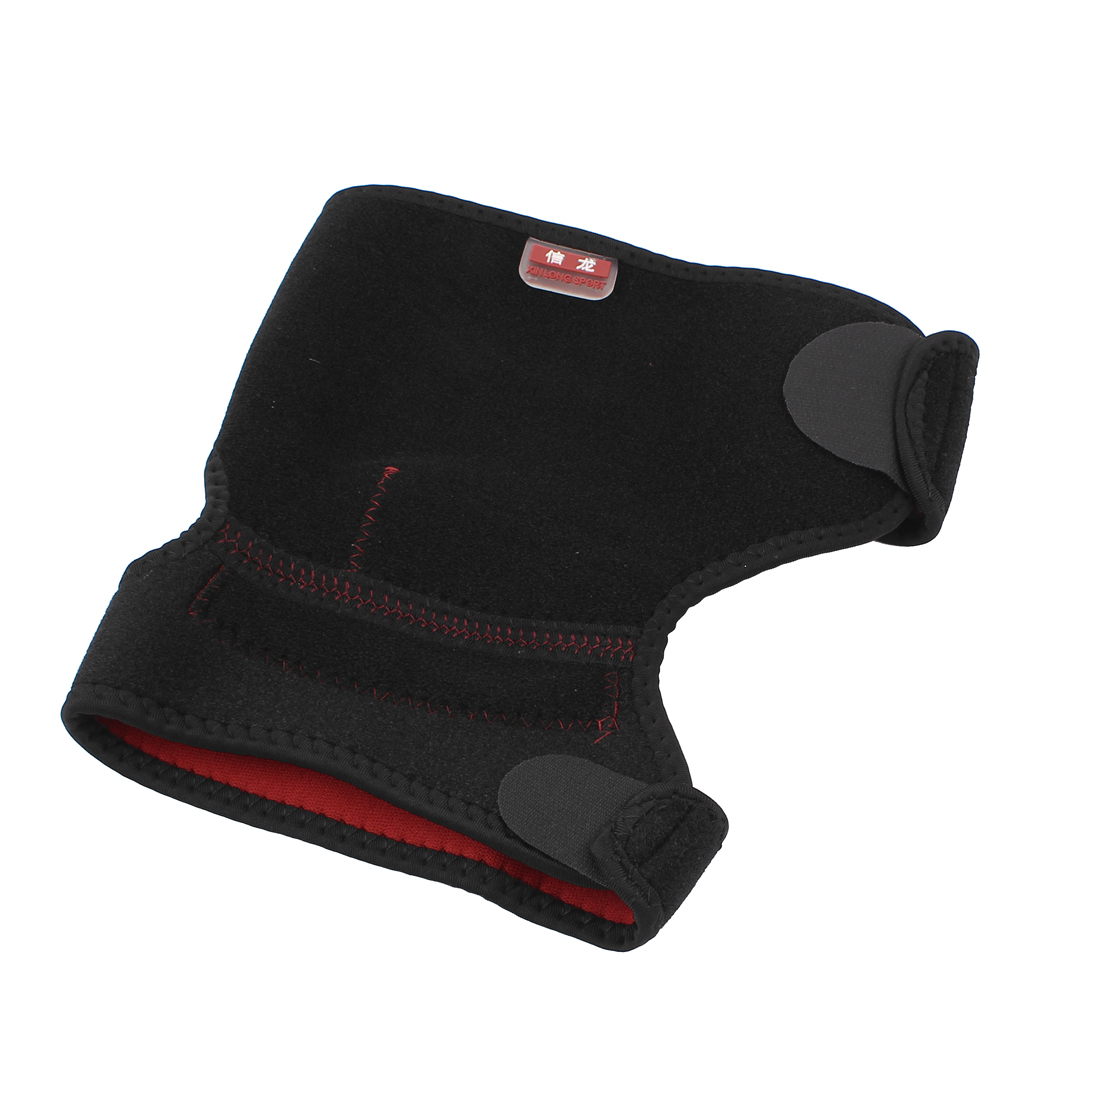 Fitness Exercise Adjustable Knee Support Brace Guard Protector Black